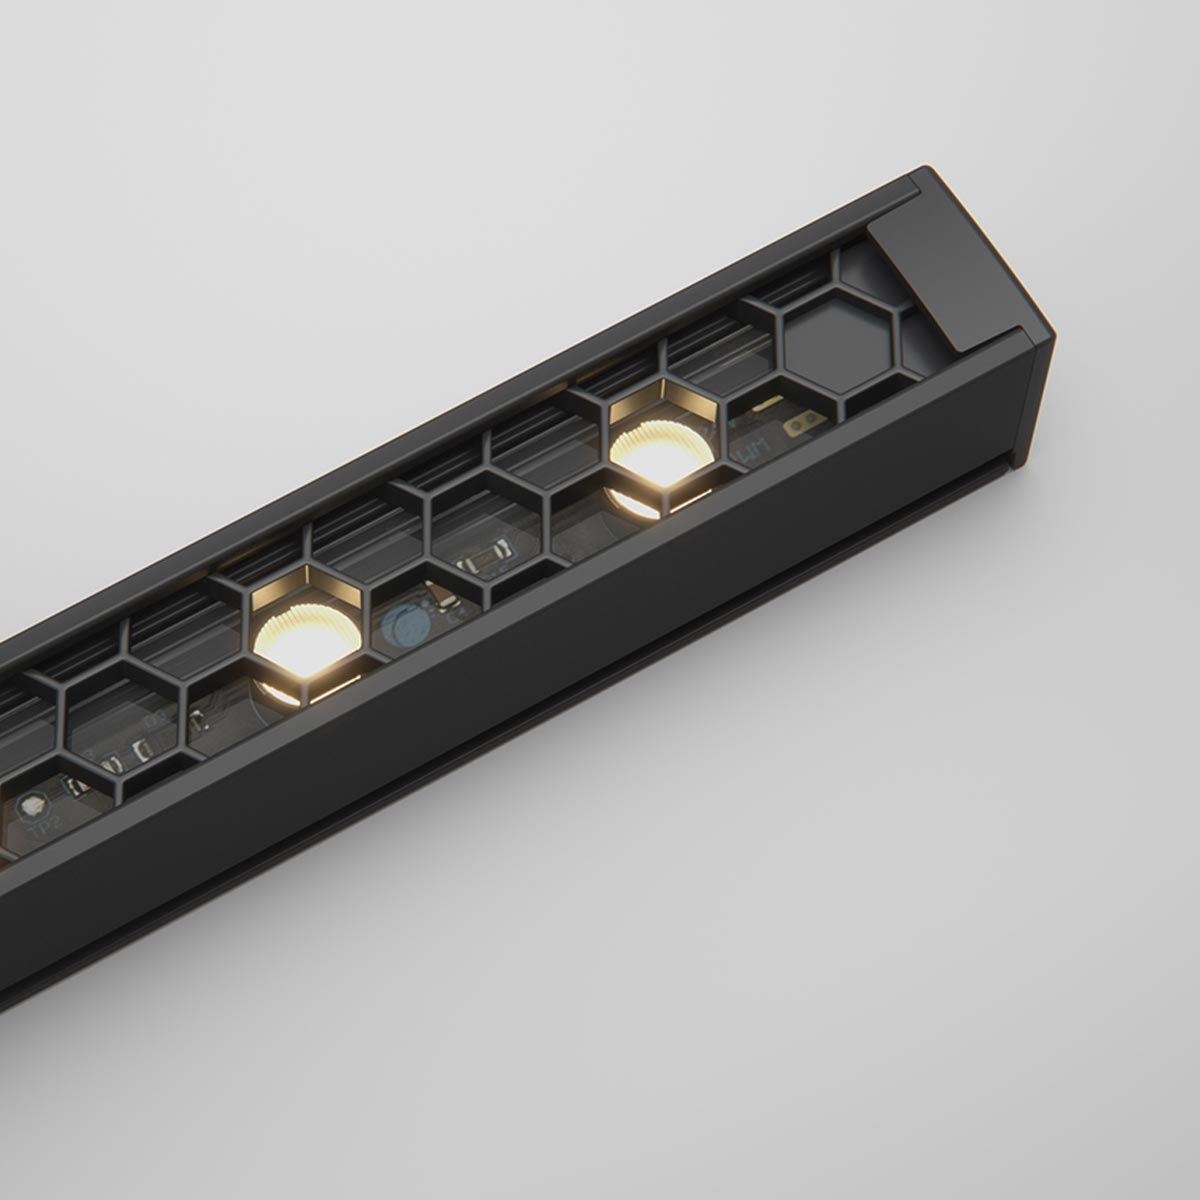 Ratio - Compact Linear Luminaire with Precise Optics and Glare Control (11W or 23W)